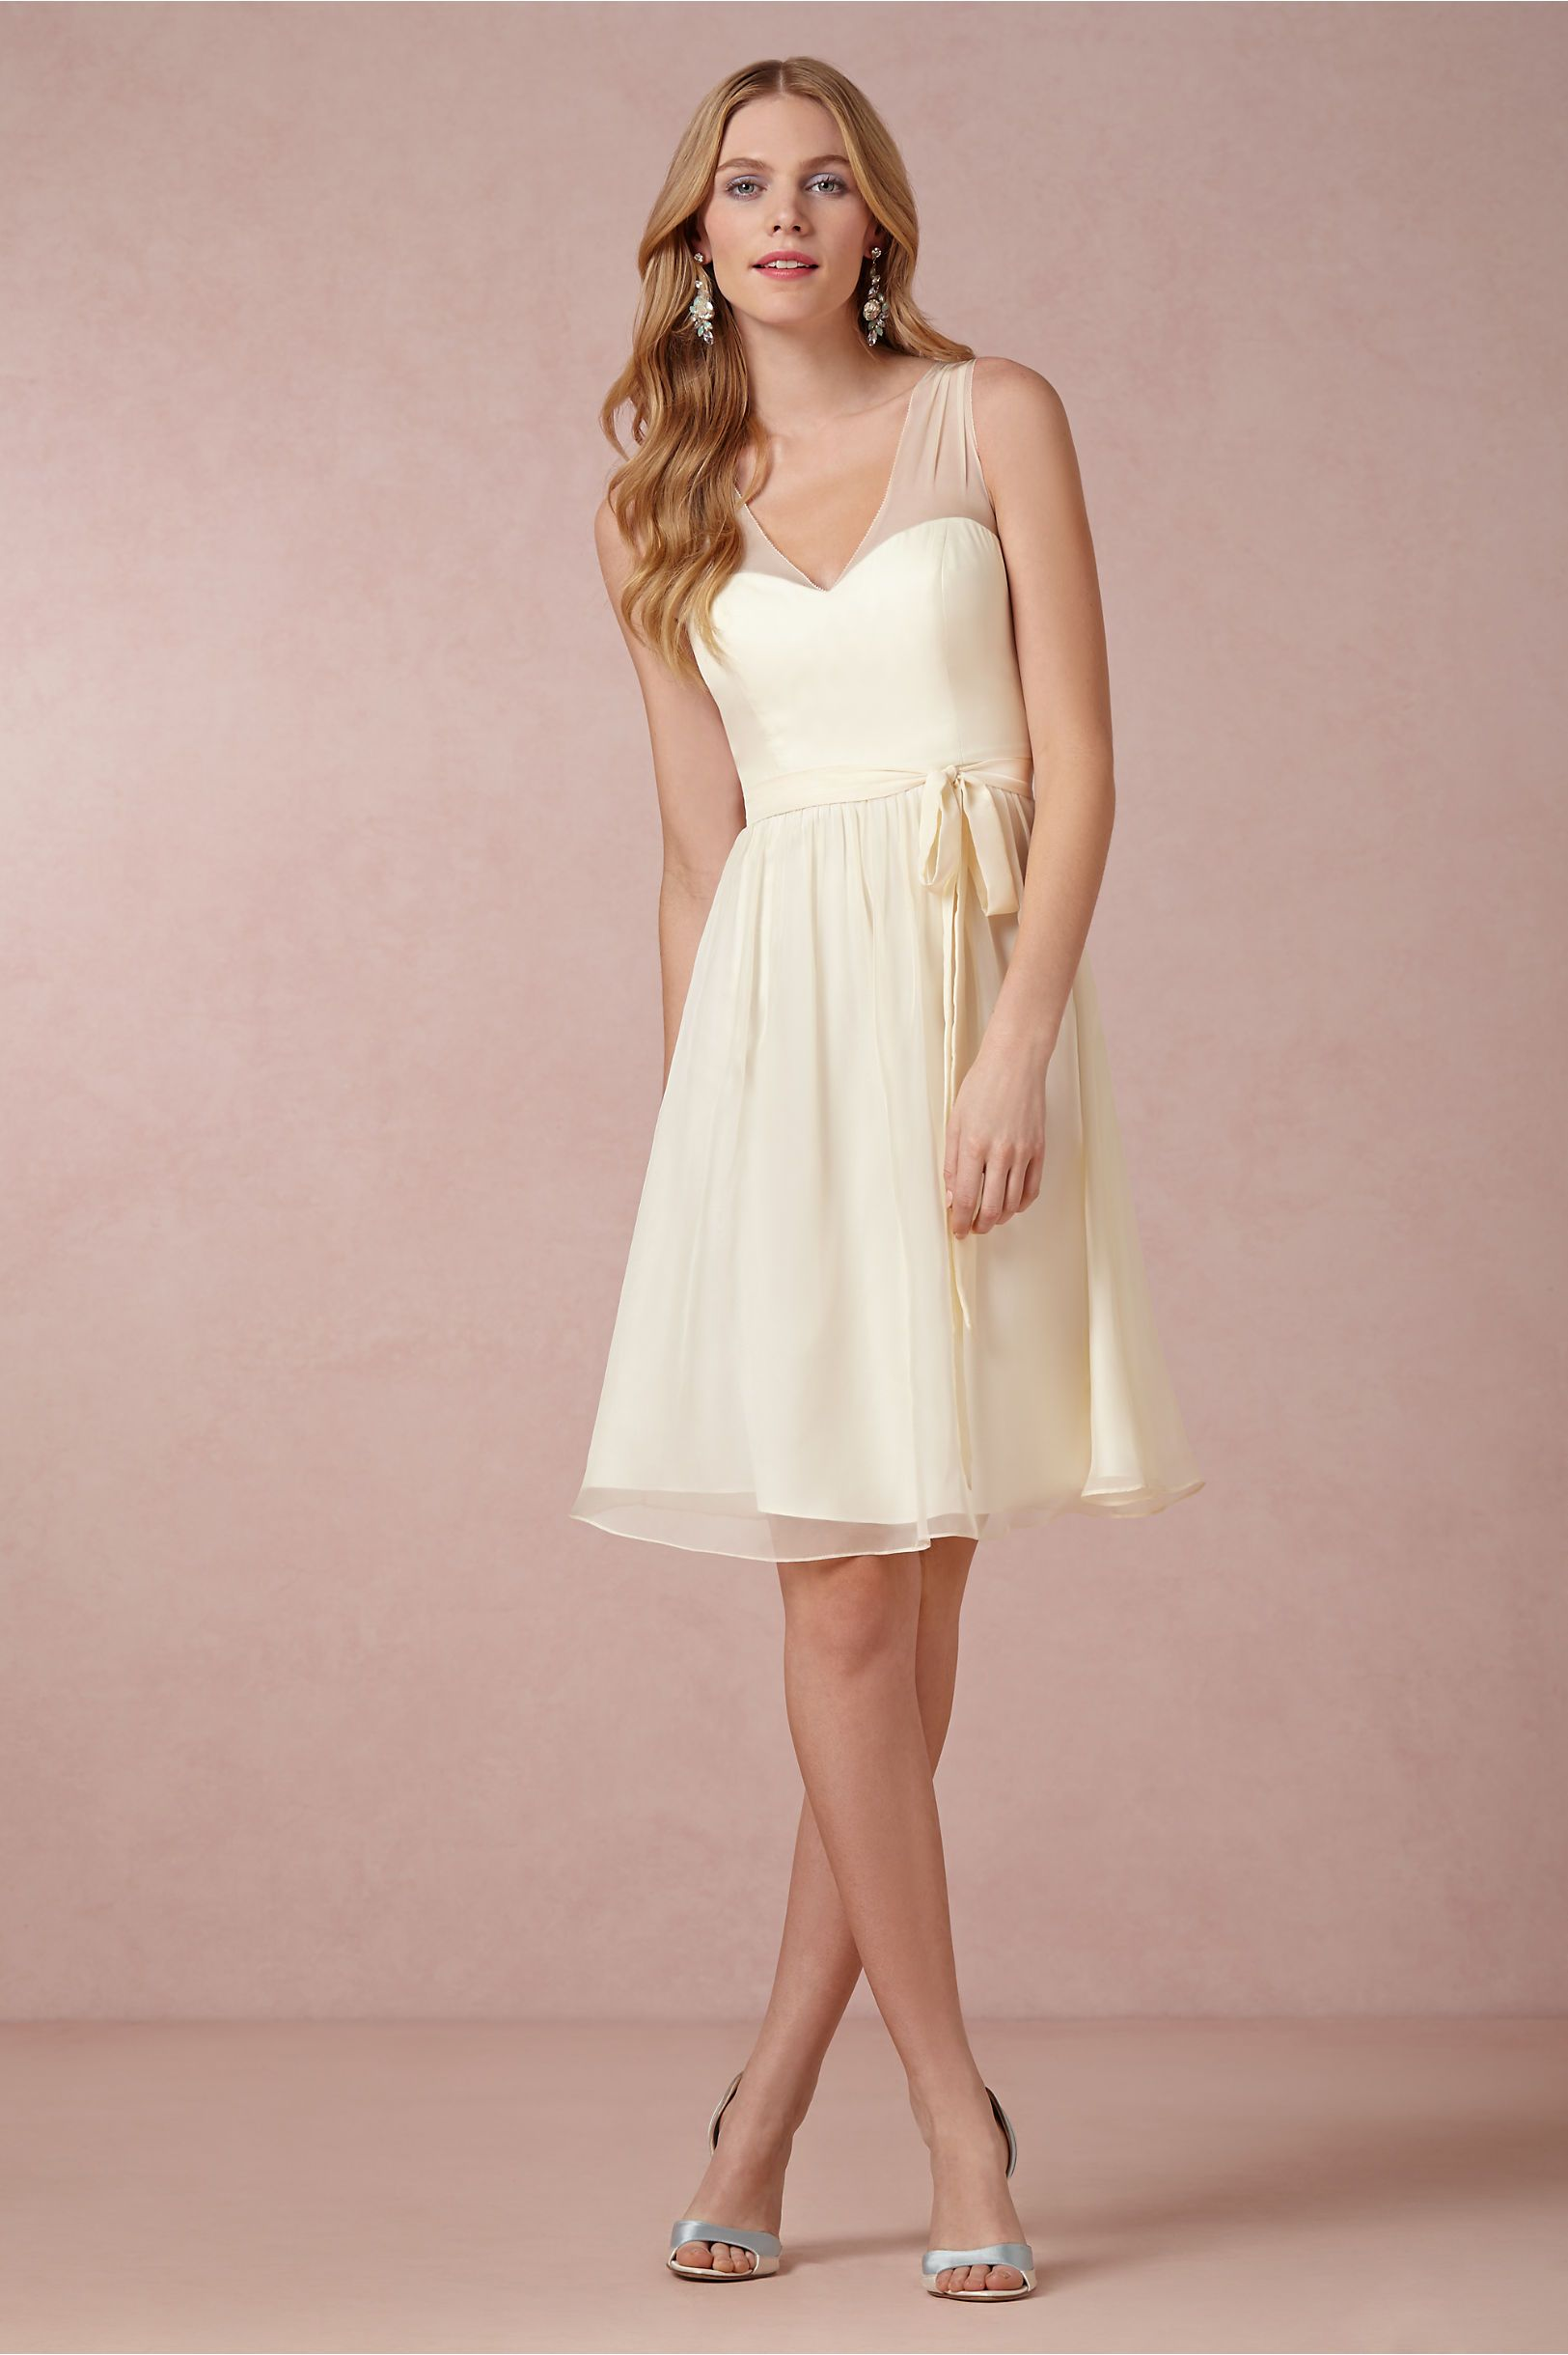 cute bridesmaid dress | Cynthia | Pinterest | Vestidos blancos ...